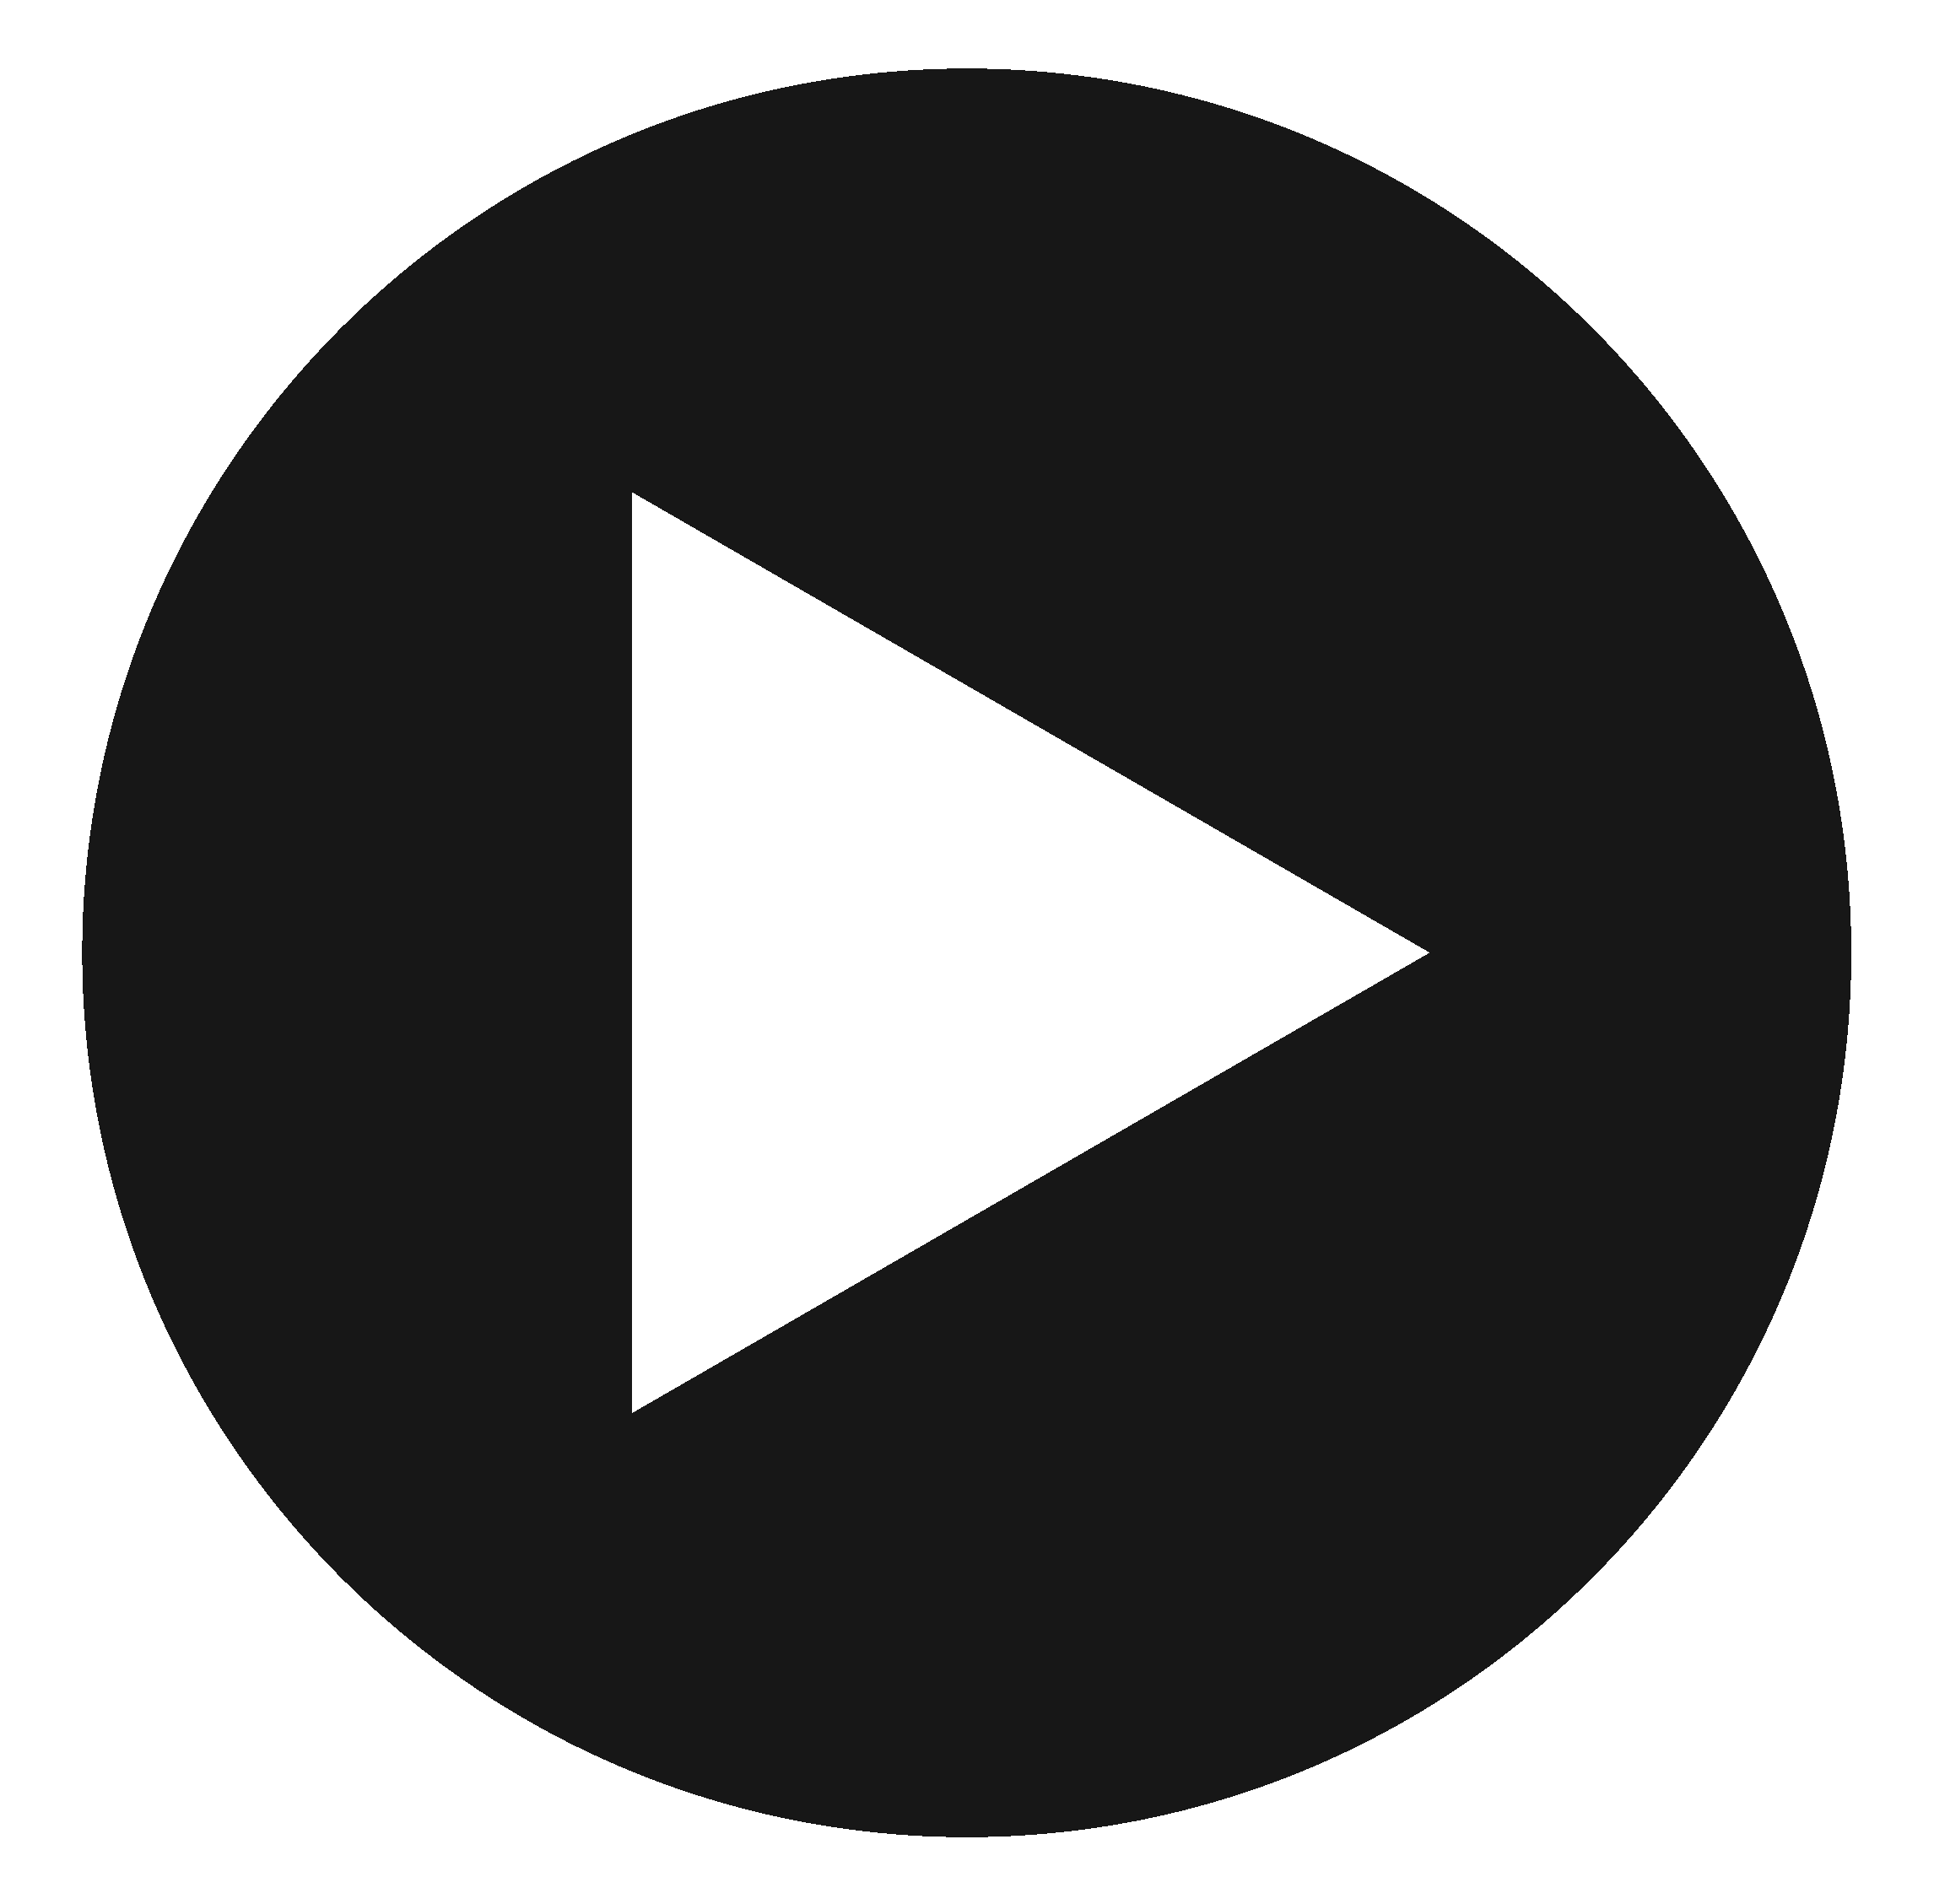 Youtube Play Button - Cliparts.co